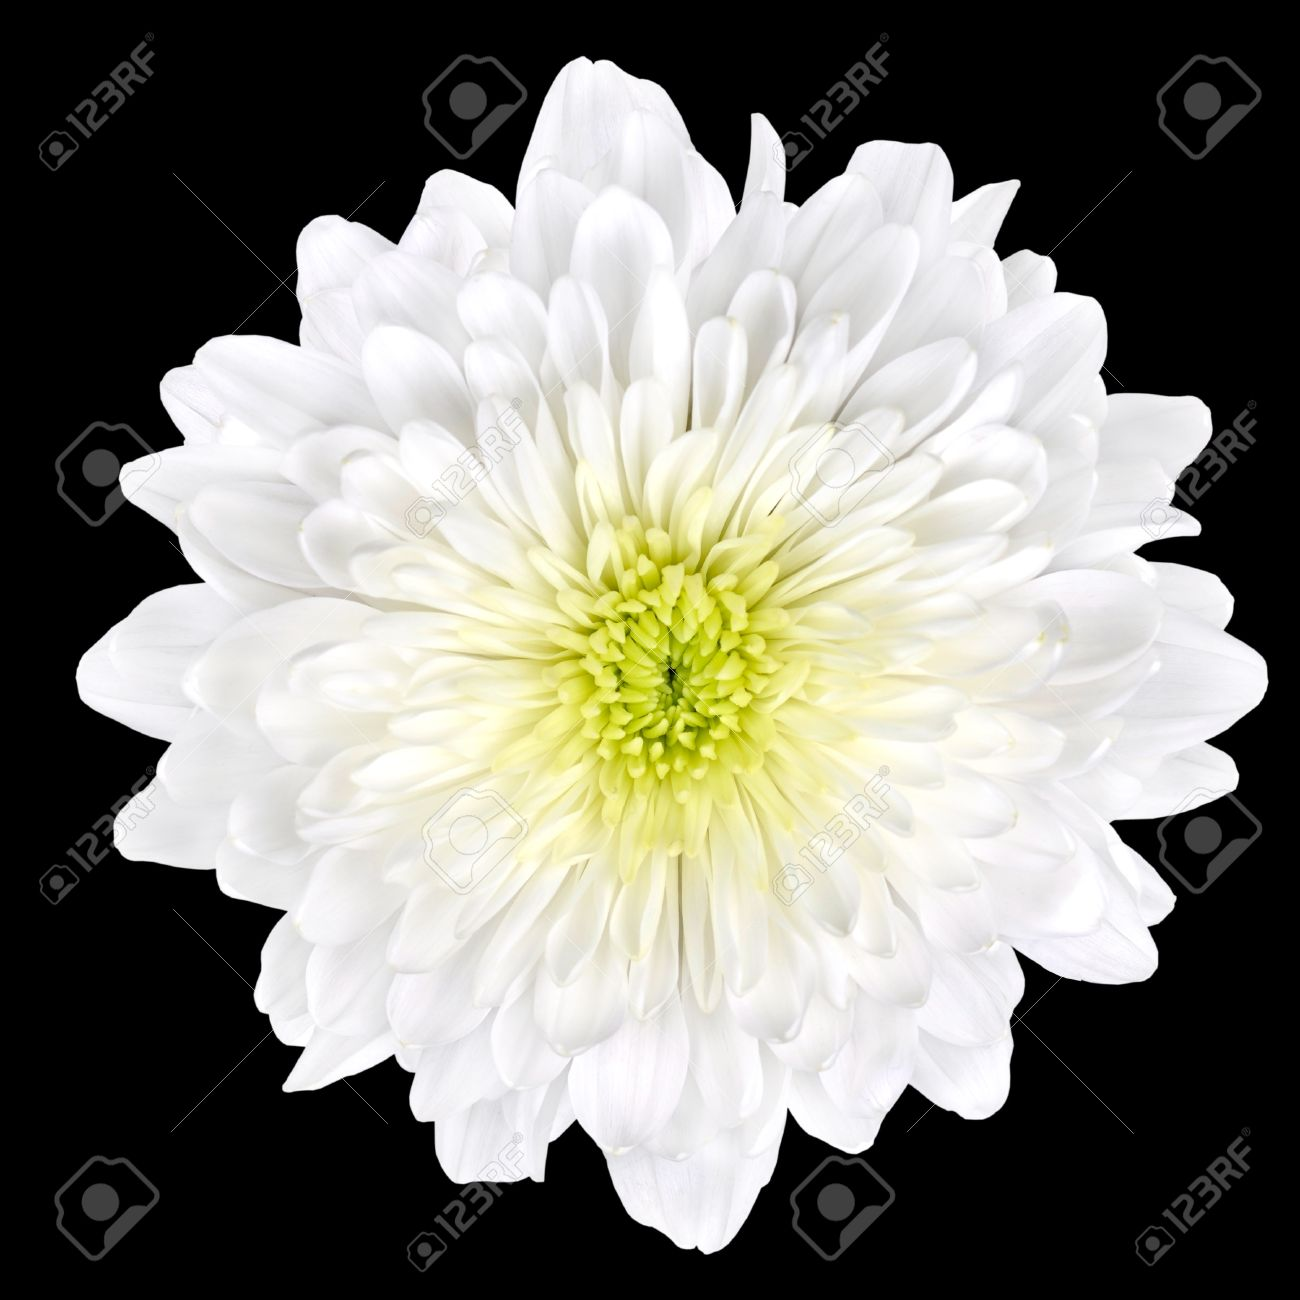 Single white chrysanthemum flower with yellow center isolated single white chrysanthemum flower with yellow center isolated over black background beautiful dahlia flowerhead macro mightylinksfo